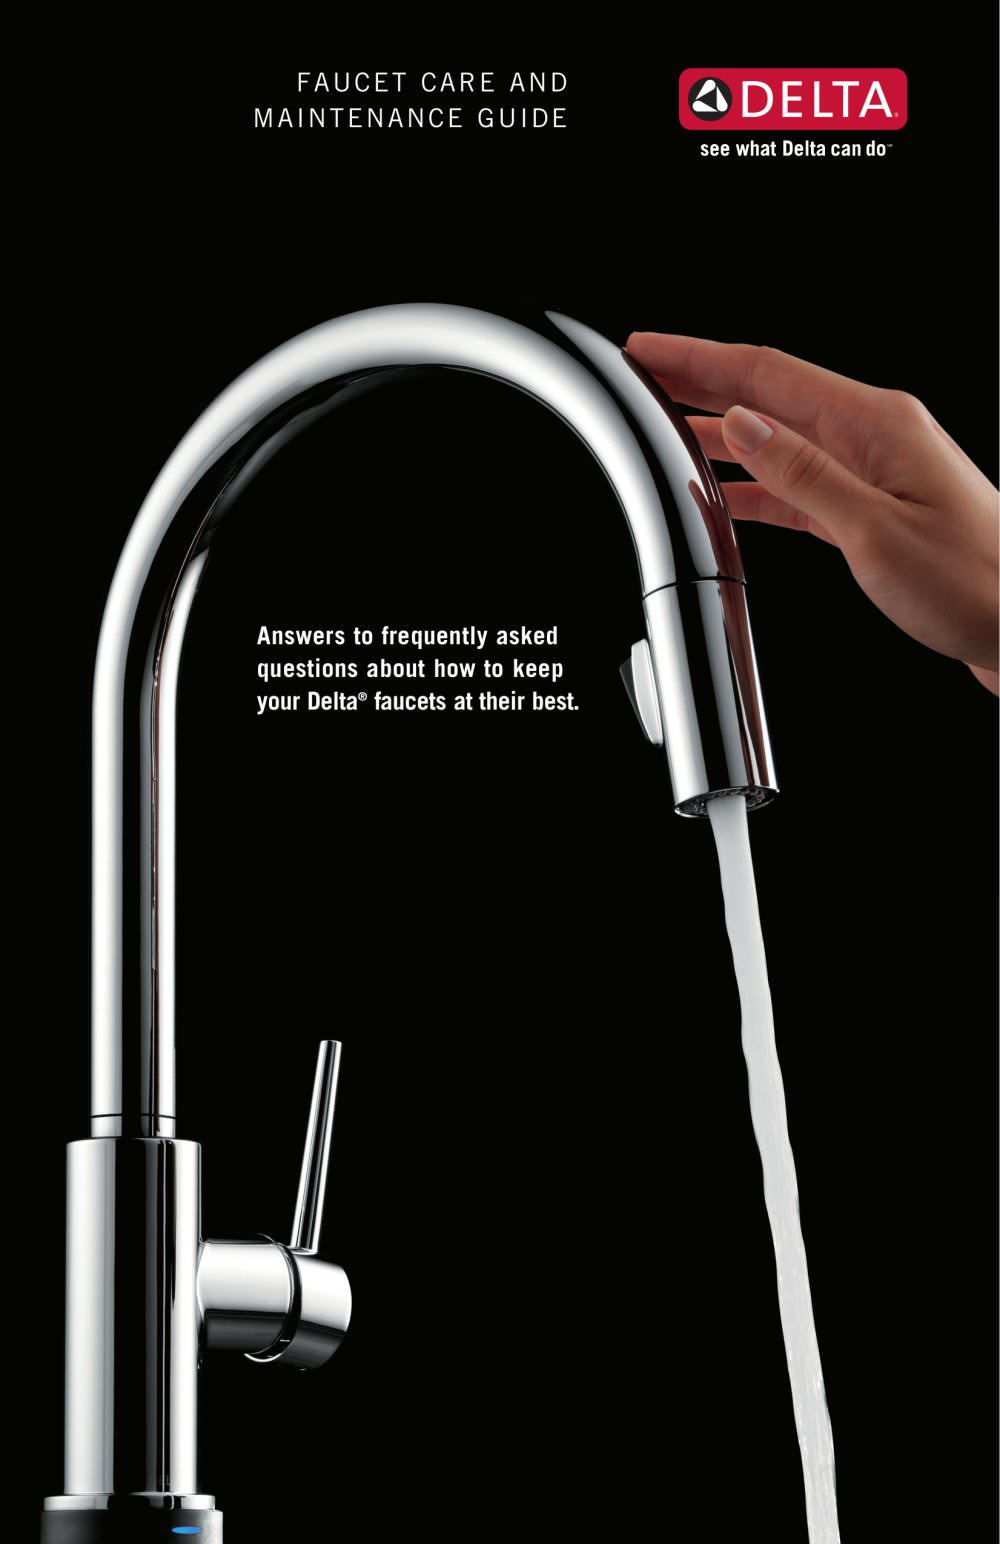 Delta Faucet Care and Maintenance Guide  DL 1767 1 24 Pages PDF